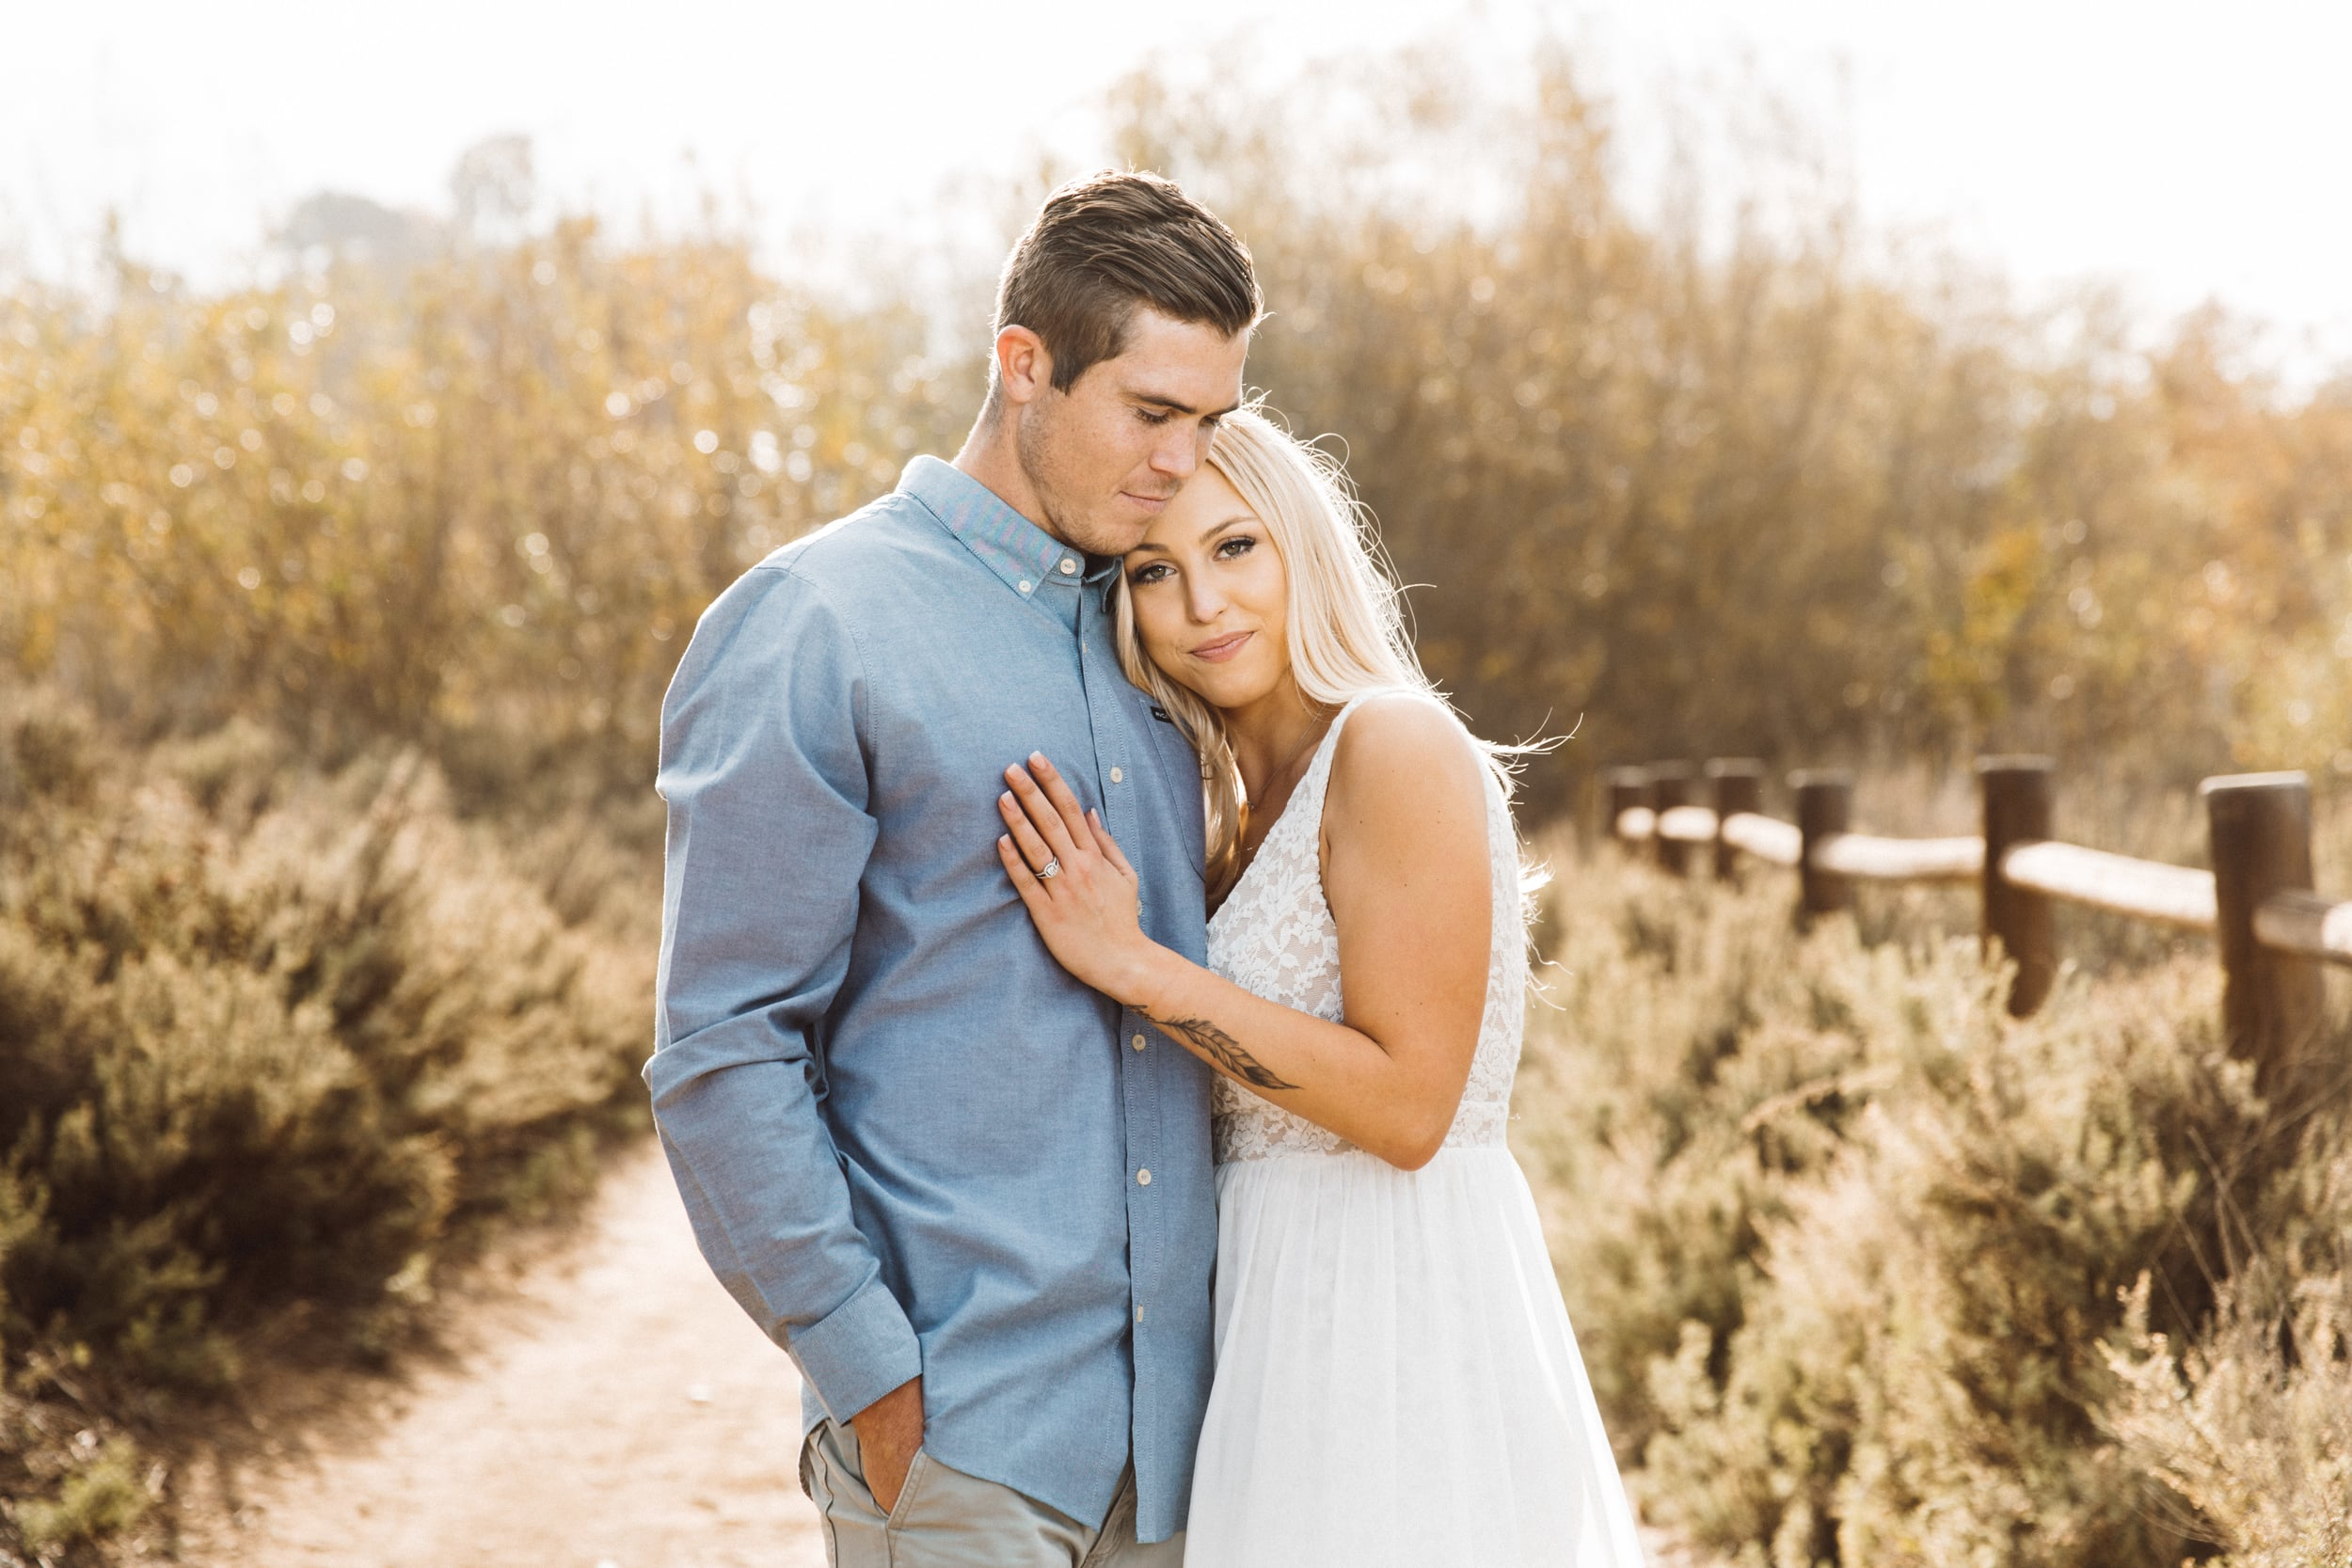 engagement_sandiego_california_love_aliciachandler_kaeli_shane-16.jpg